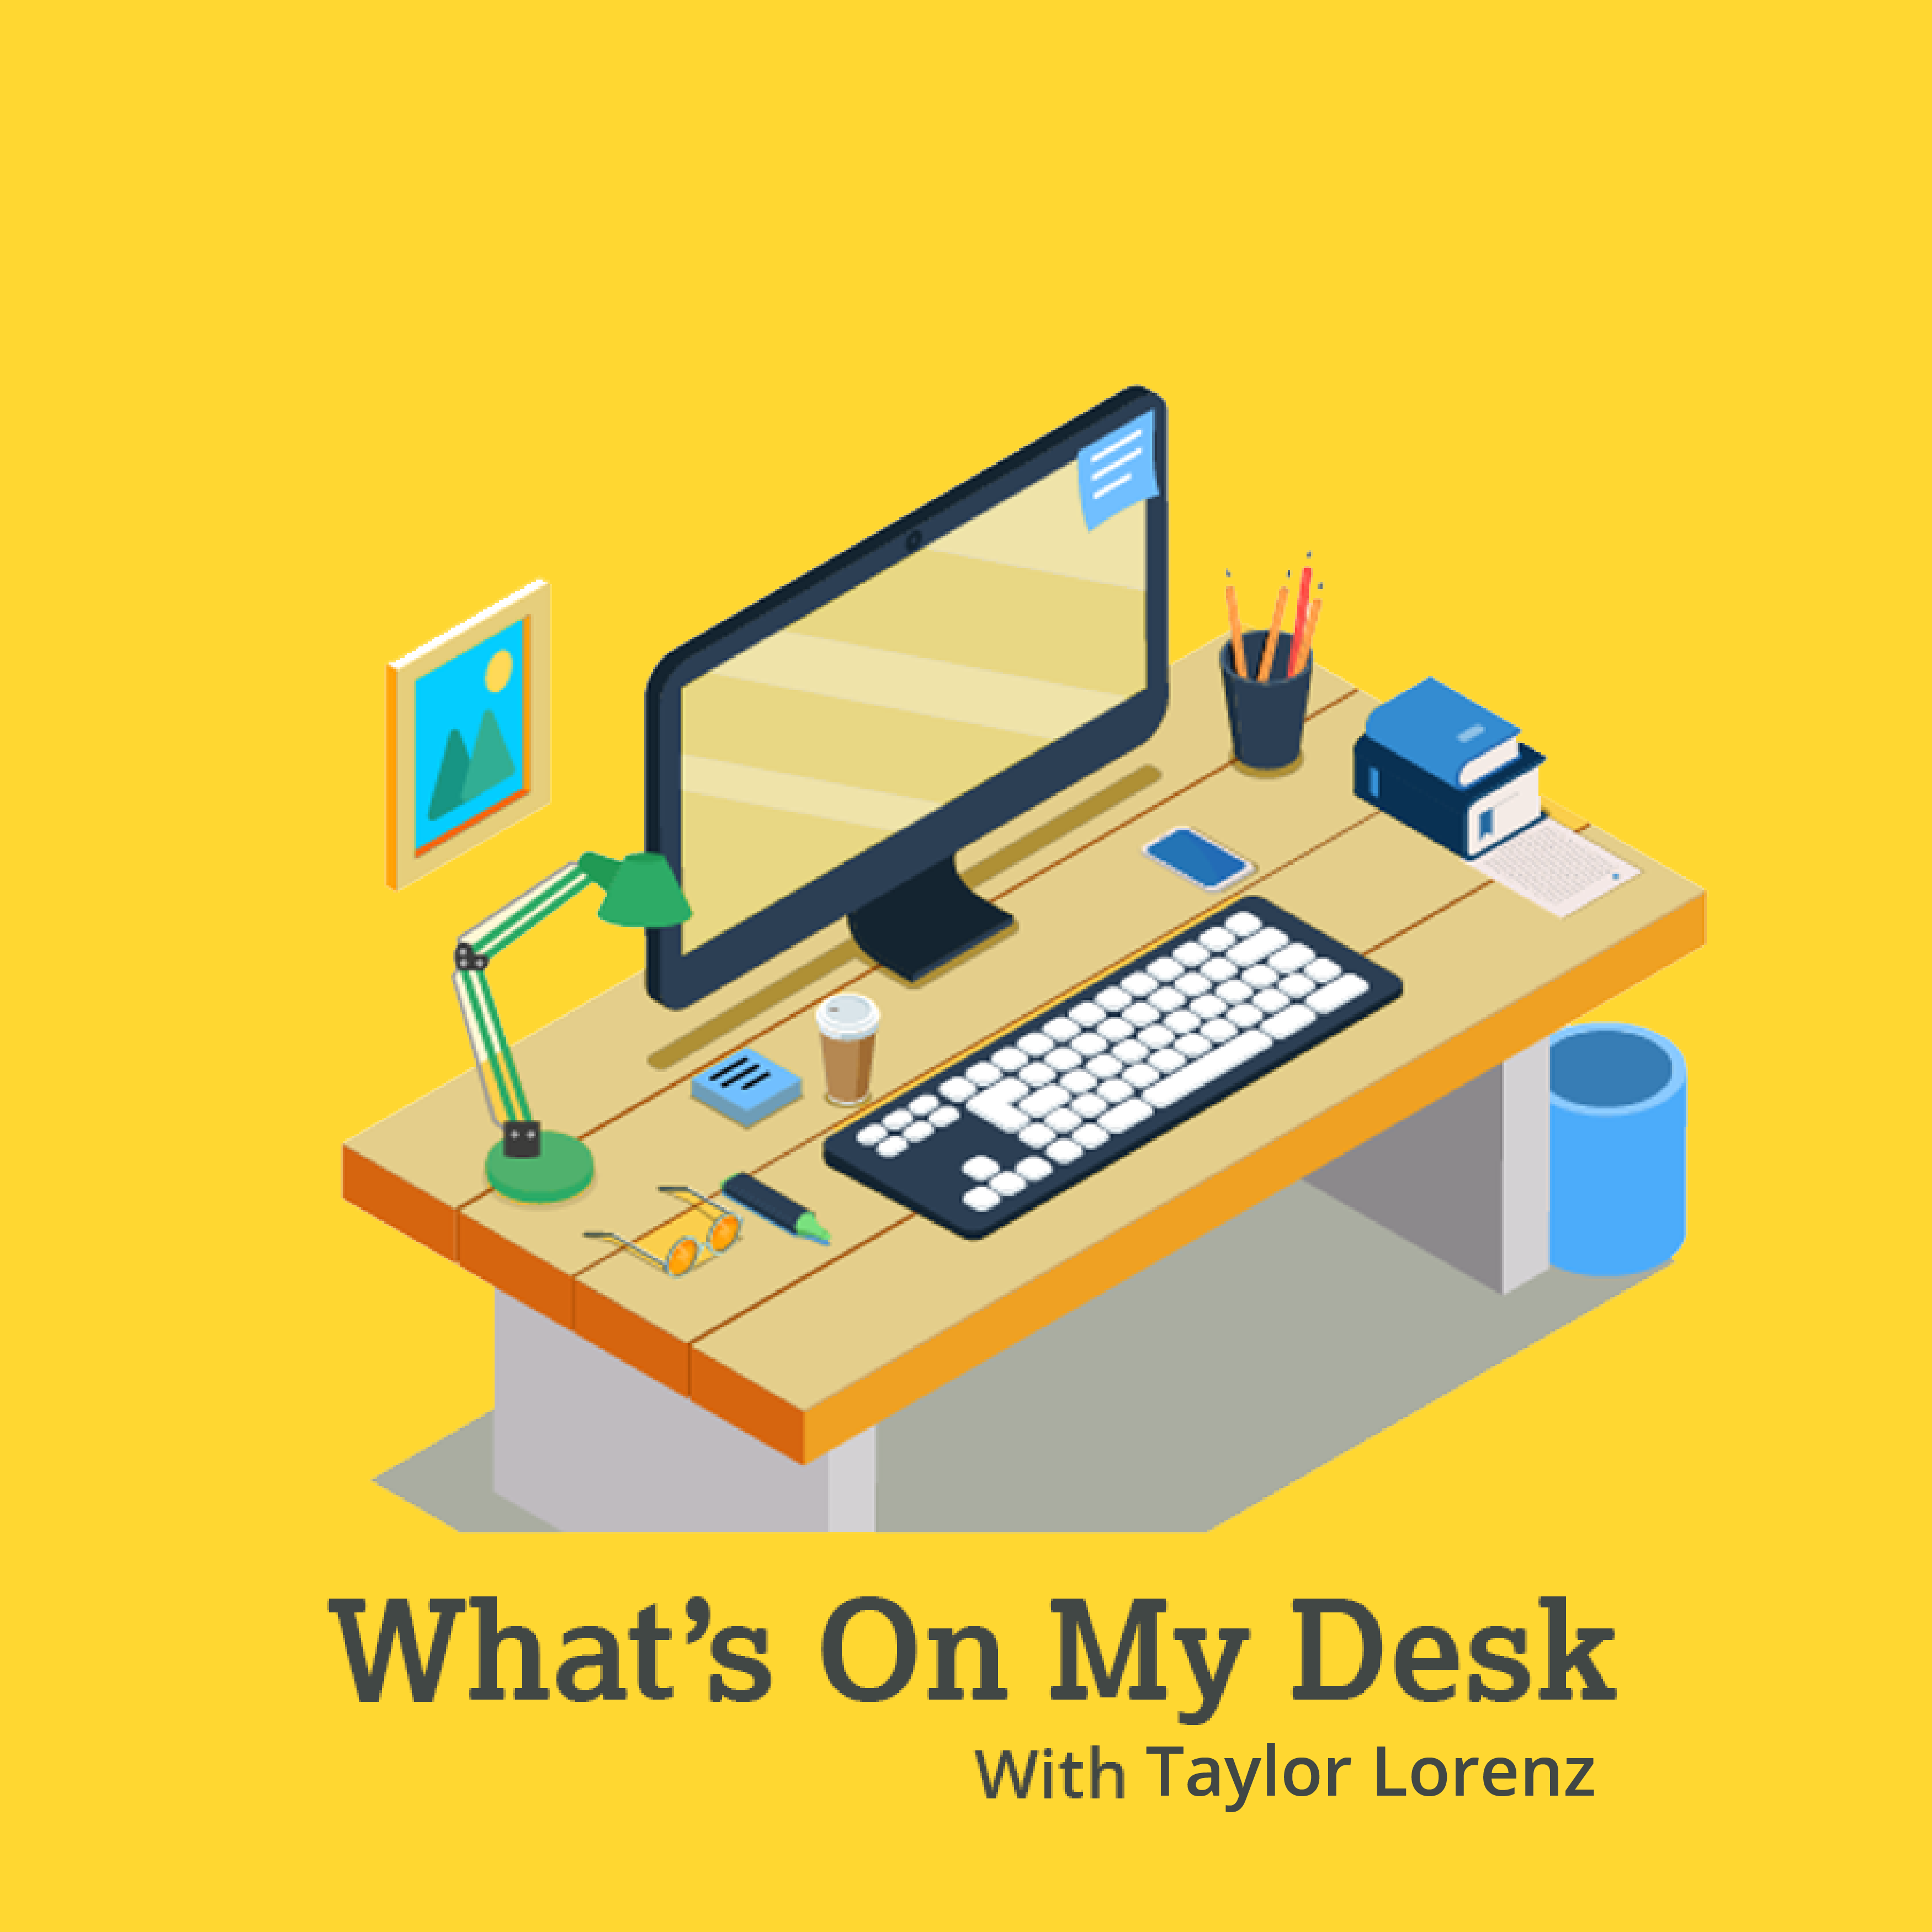 What's On My Desk - Taylor Lorenz, The Atlantic